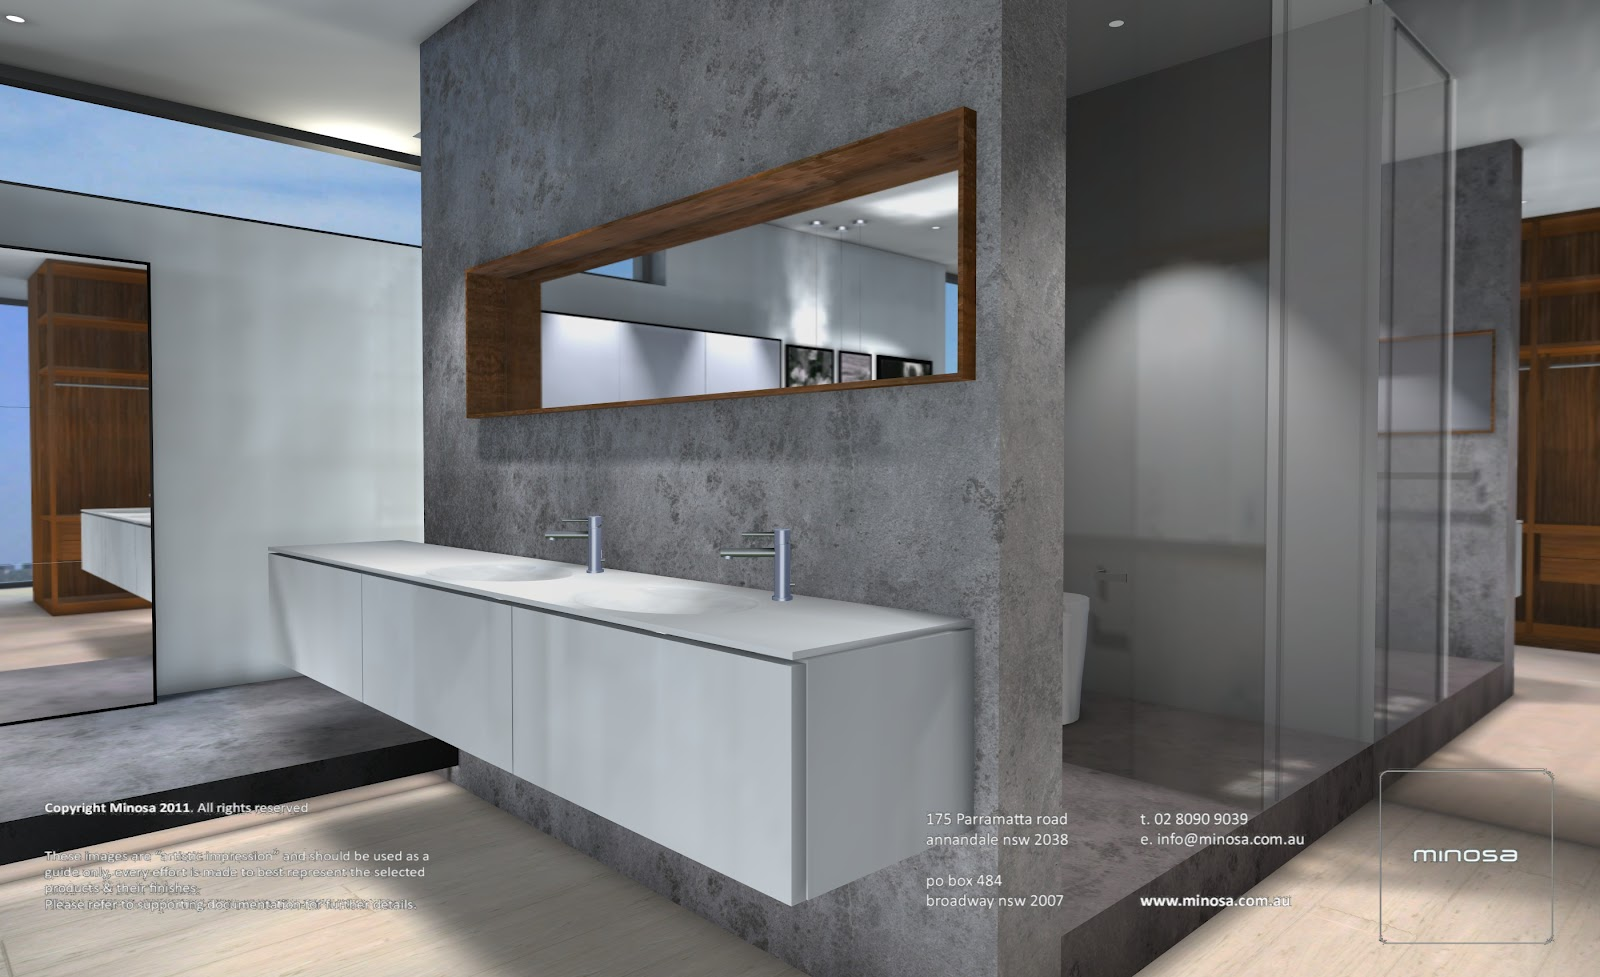 Minosa bathroom washbasins for The bathroom designer